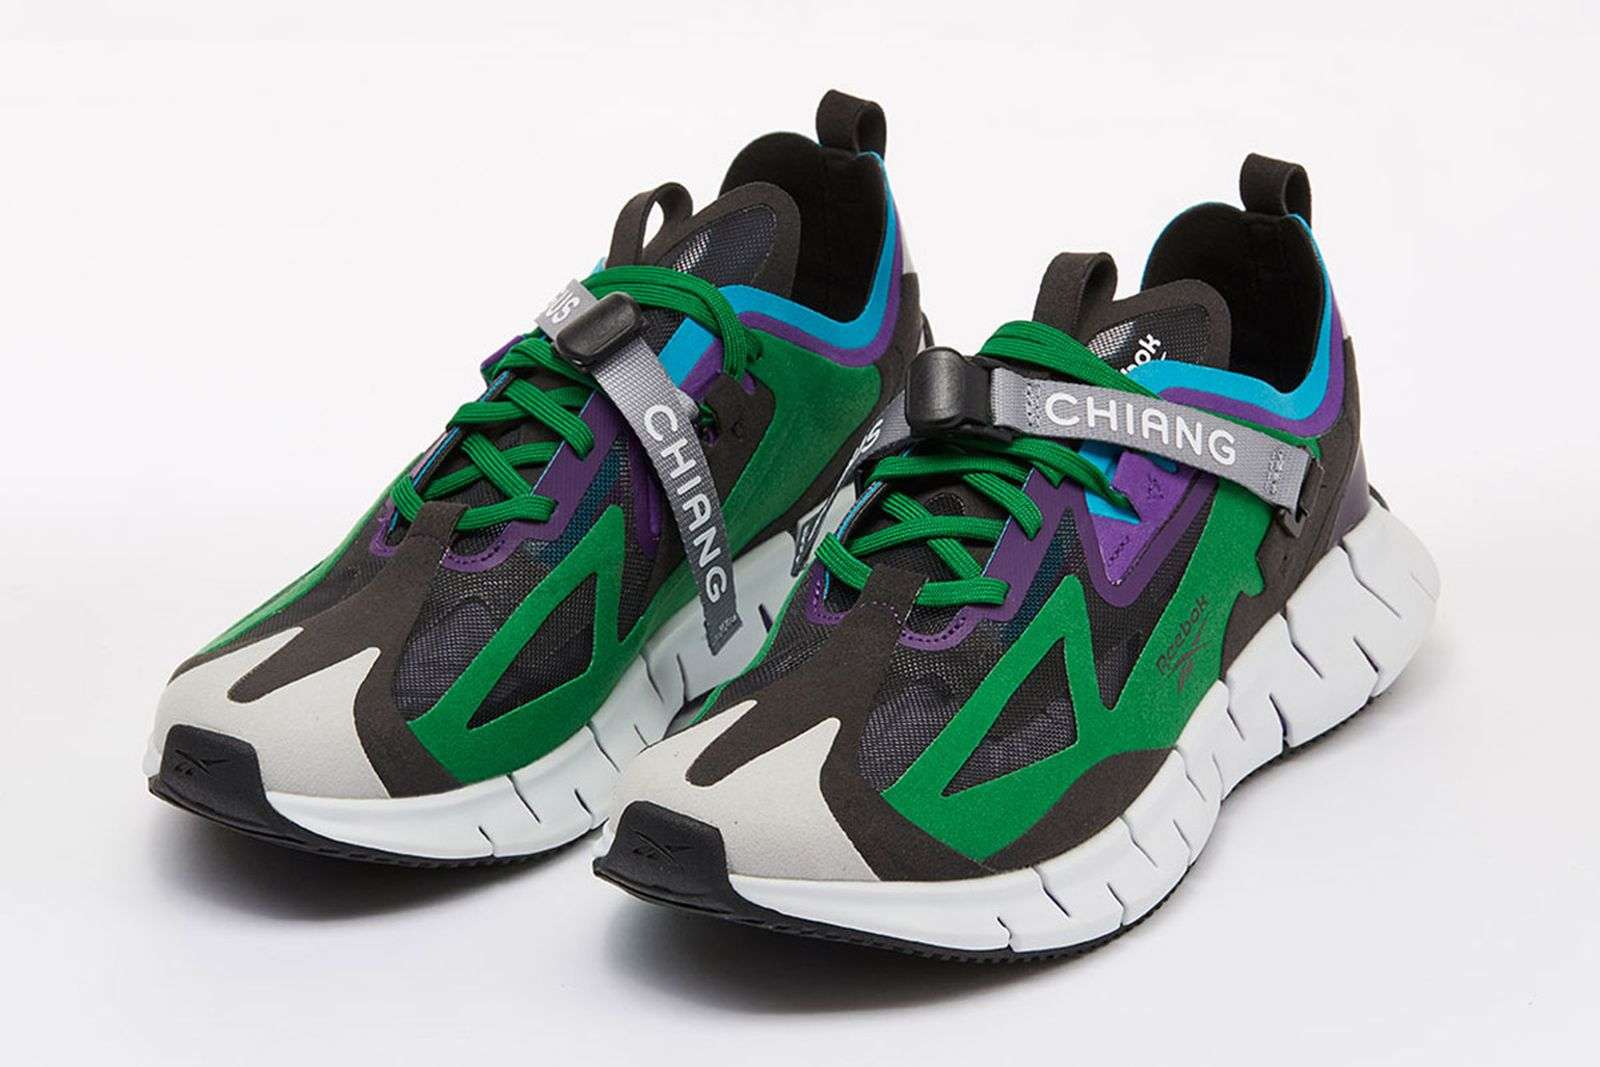 reebok paris fashion week ss20 sneaker collaborations Angus Chiang Cottweiler